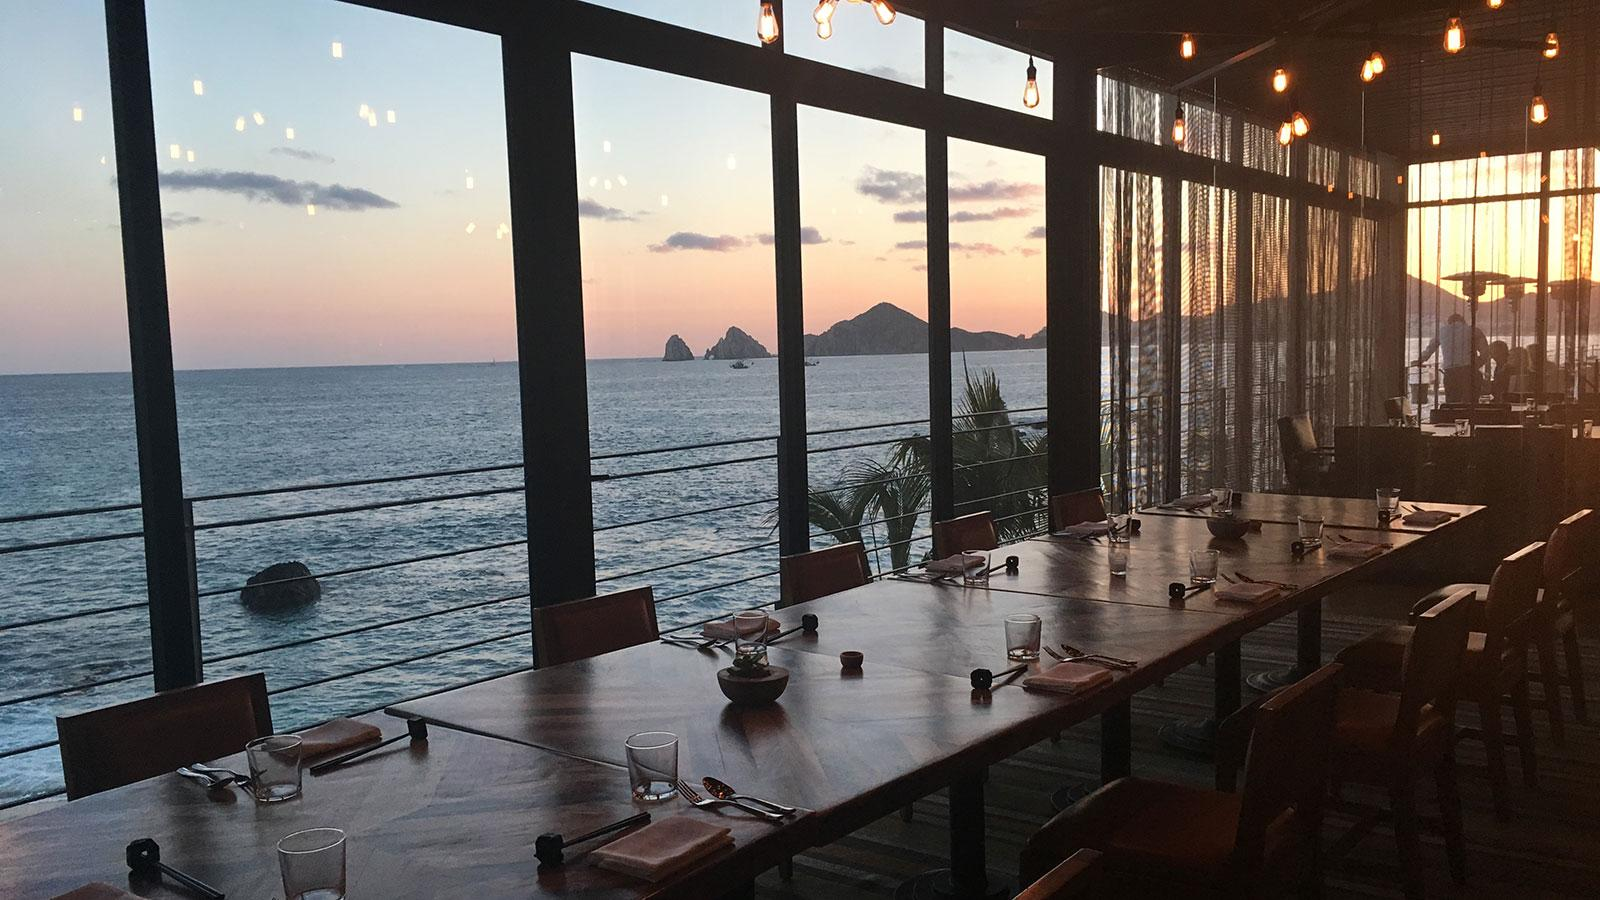 Manta's view of the ocean and mountains from the dining room